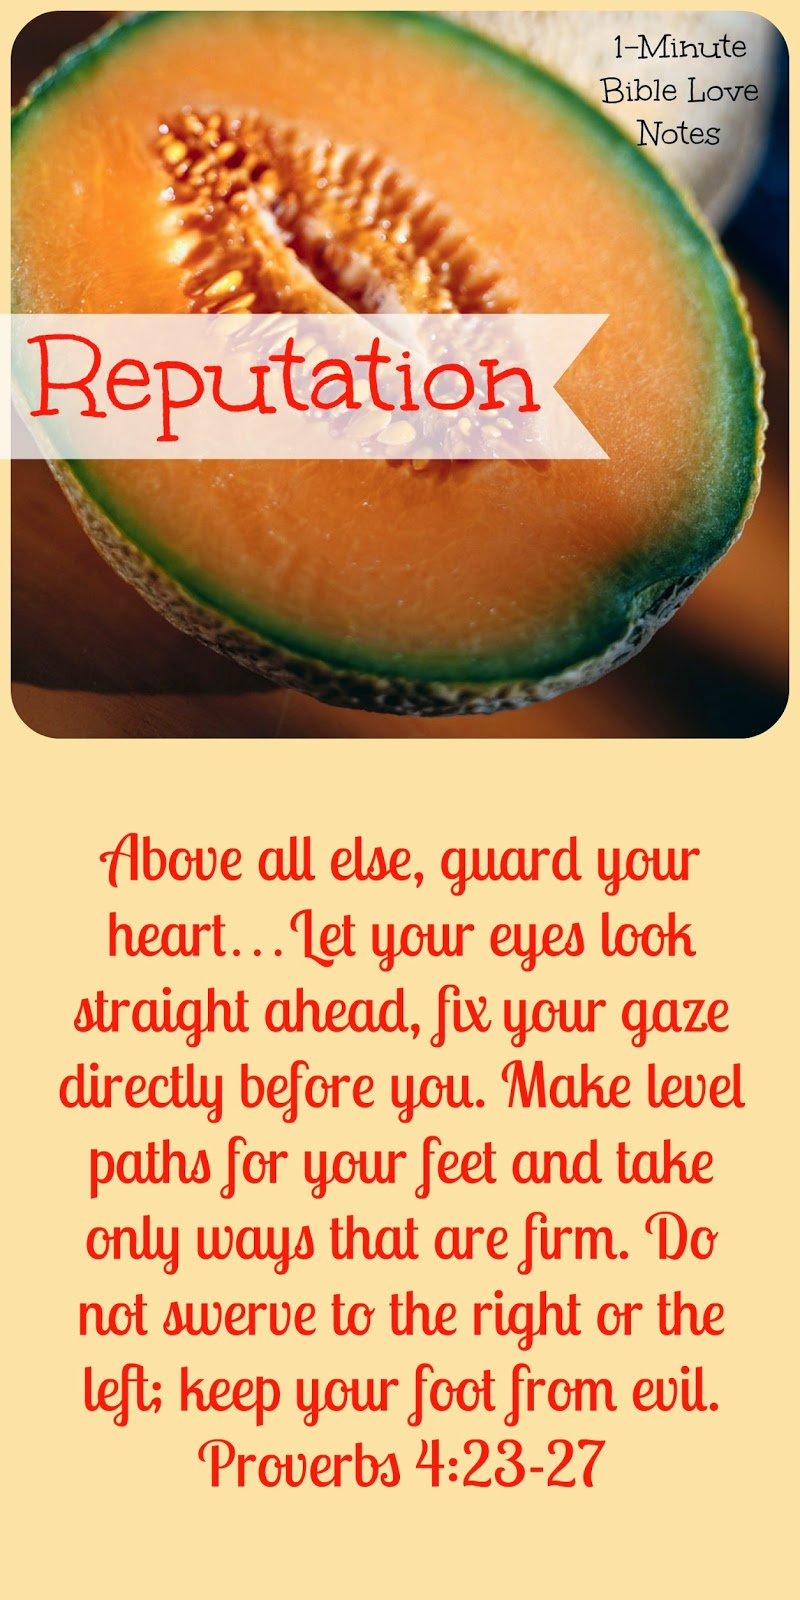 listeria, reputation, Proverbs 4:23-27, guard your heart, guard your steps